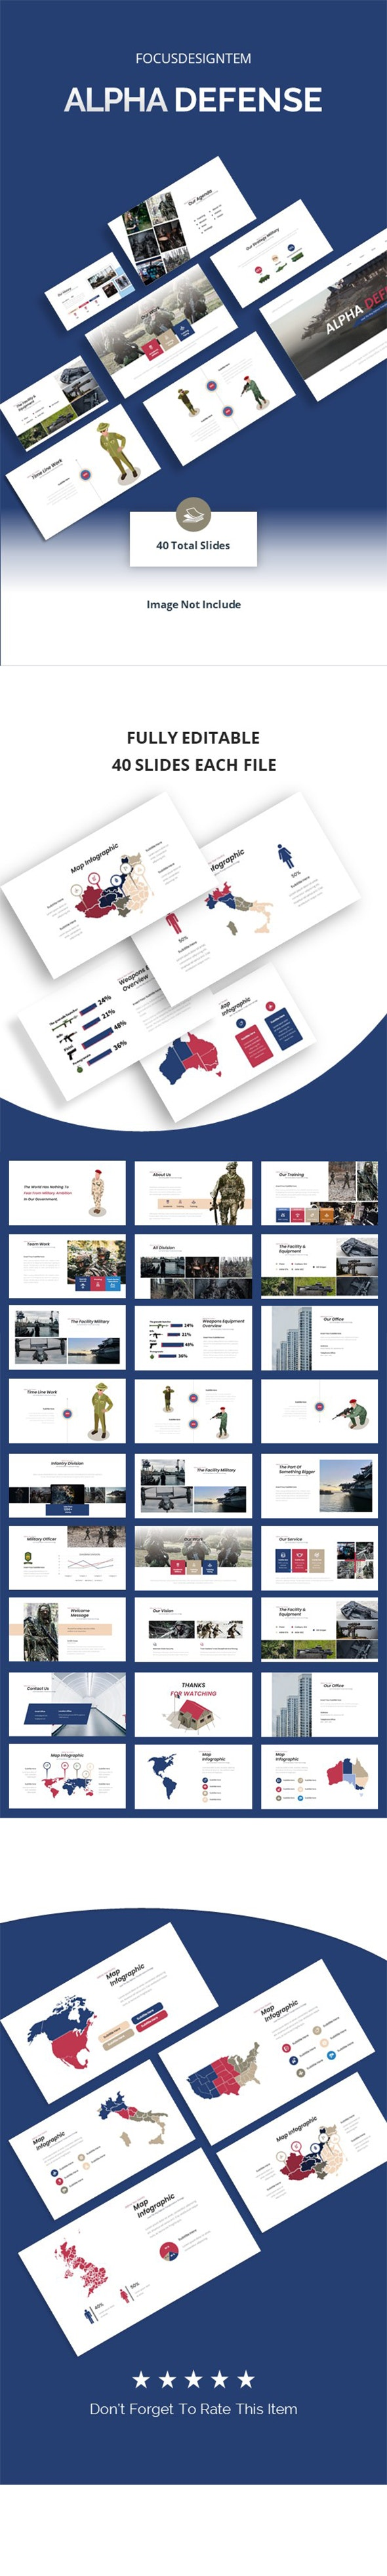 Military Alpha Defense Google Slides Template - Google Slides Presentation Templates